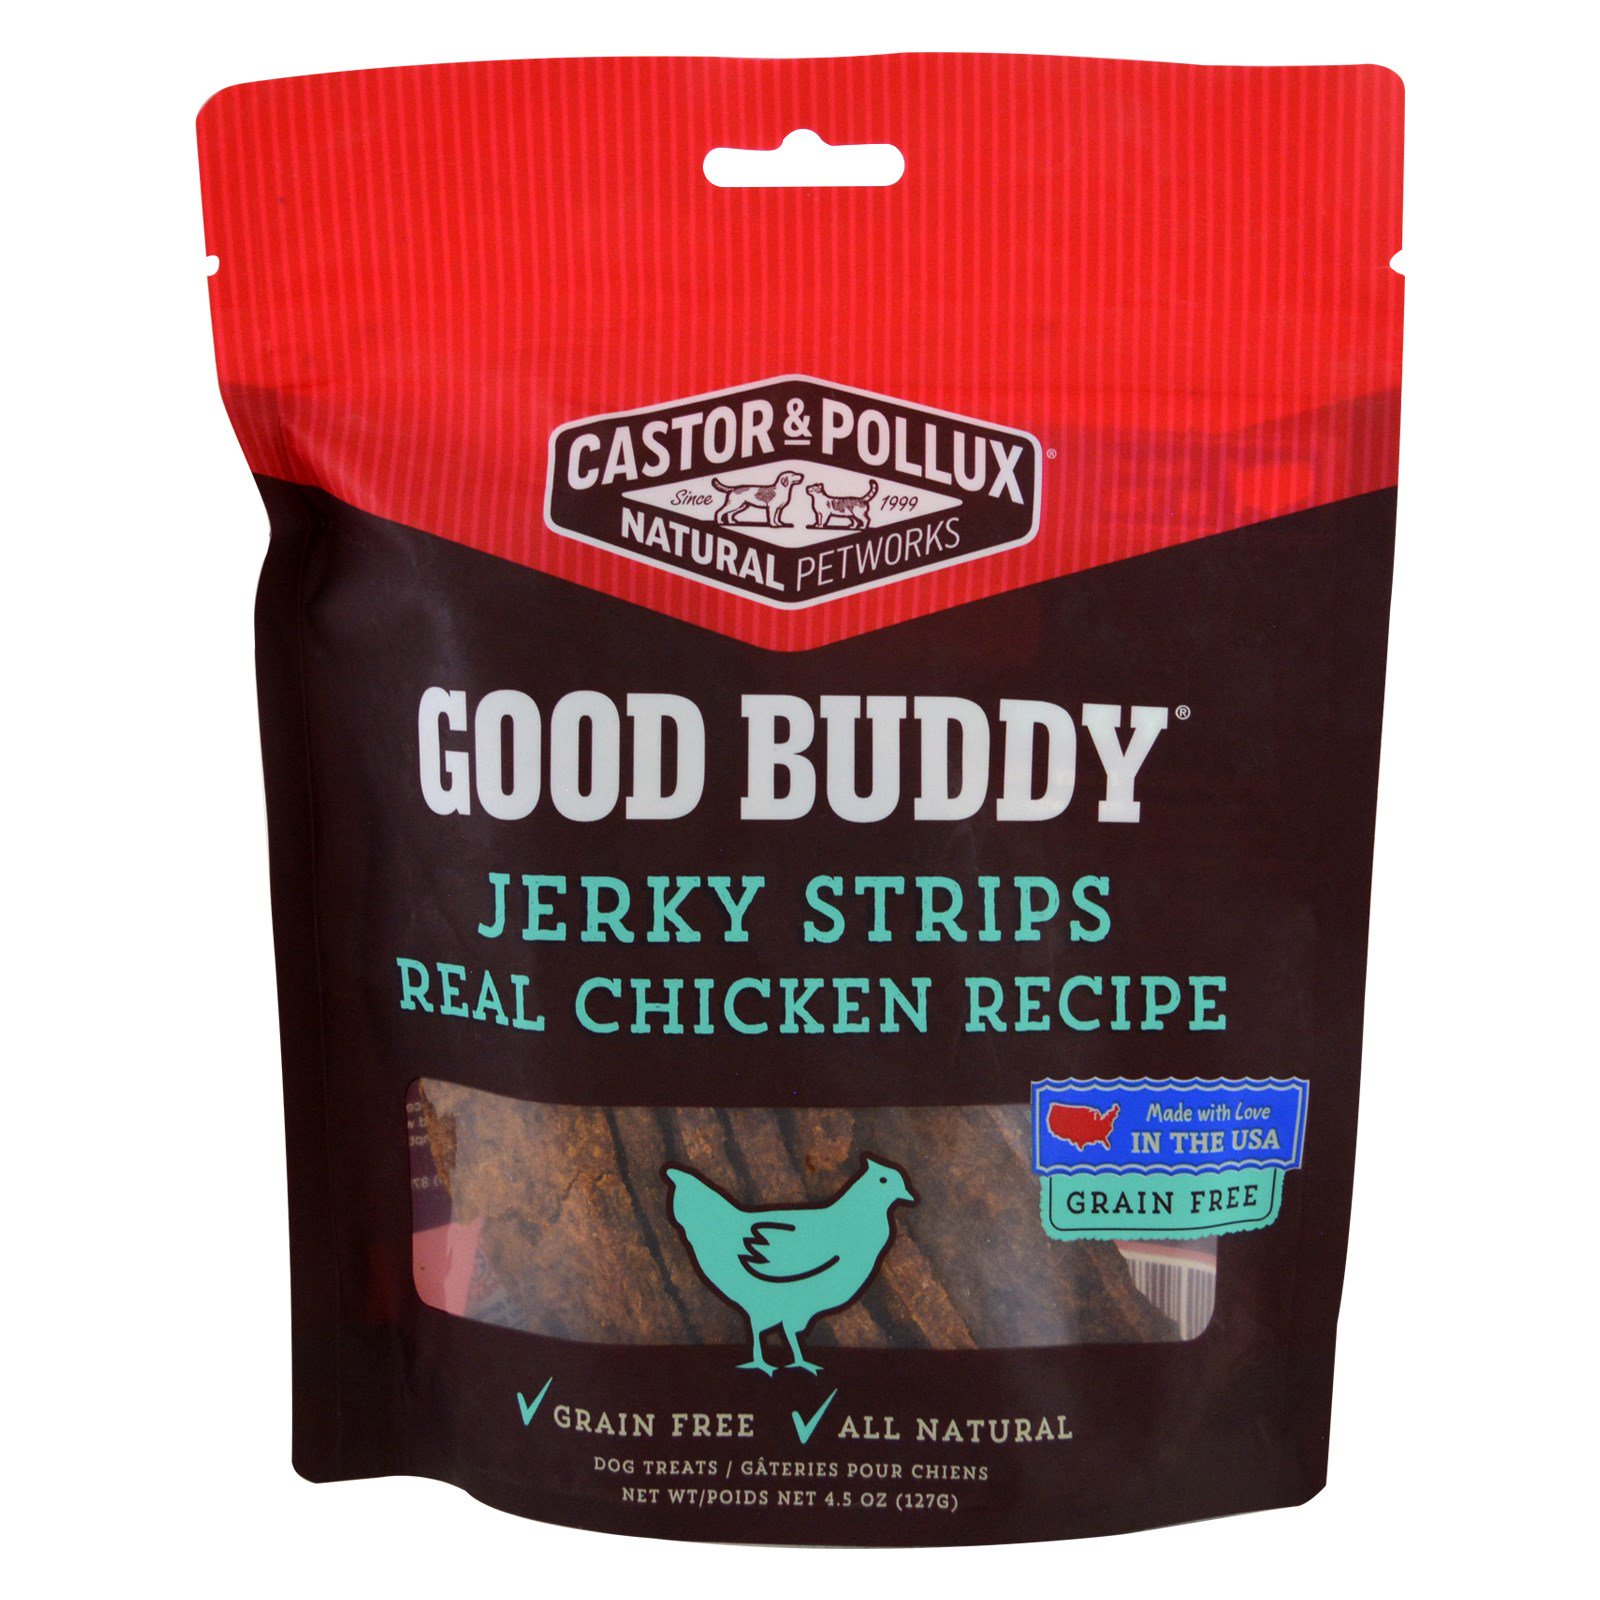 Castor & Pollux, Good Buddy, Jerky Strips, Real Chicken Recipe, 4.5 oz(pack of 2)